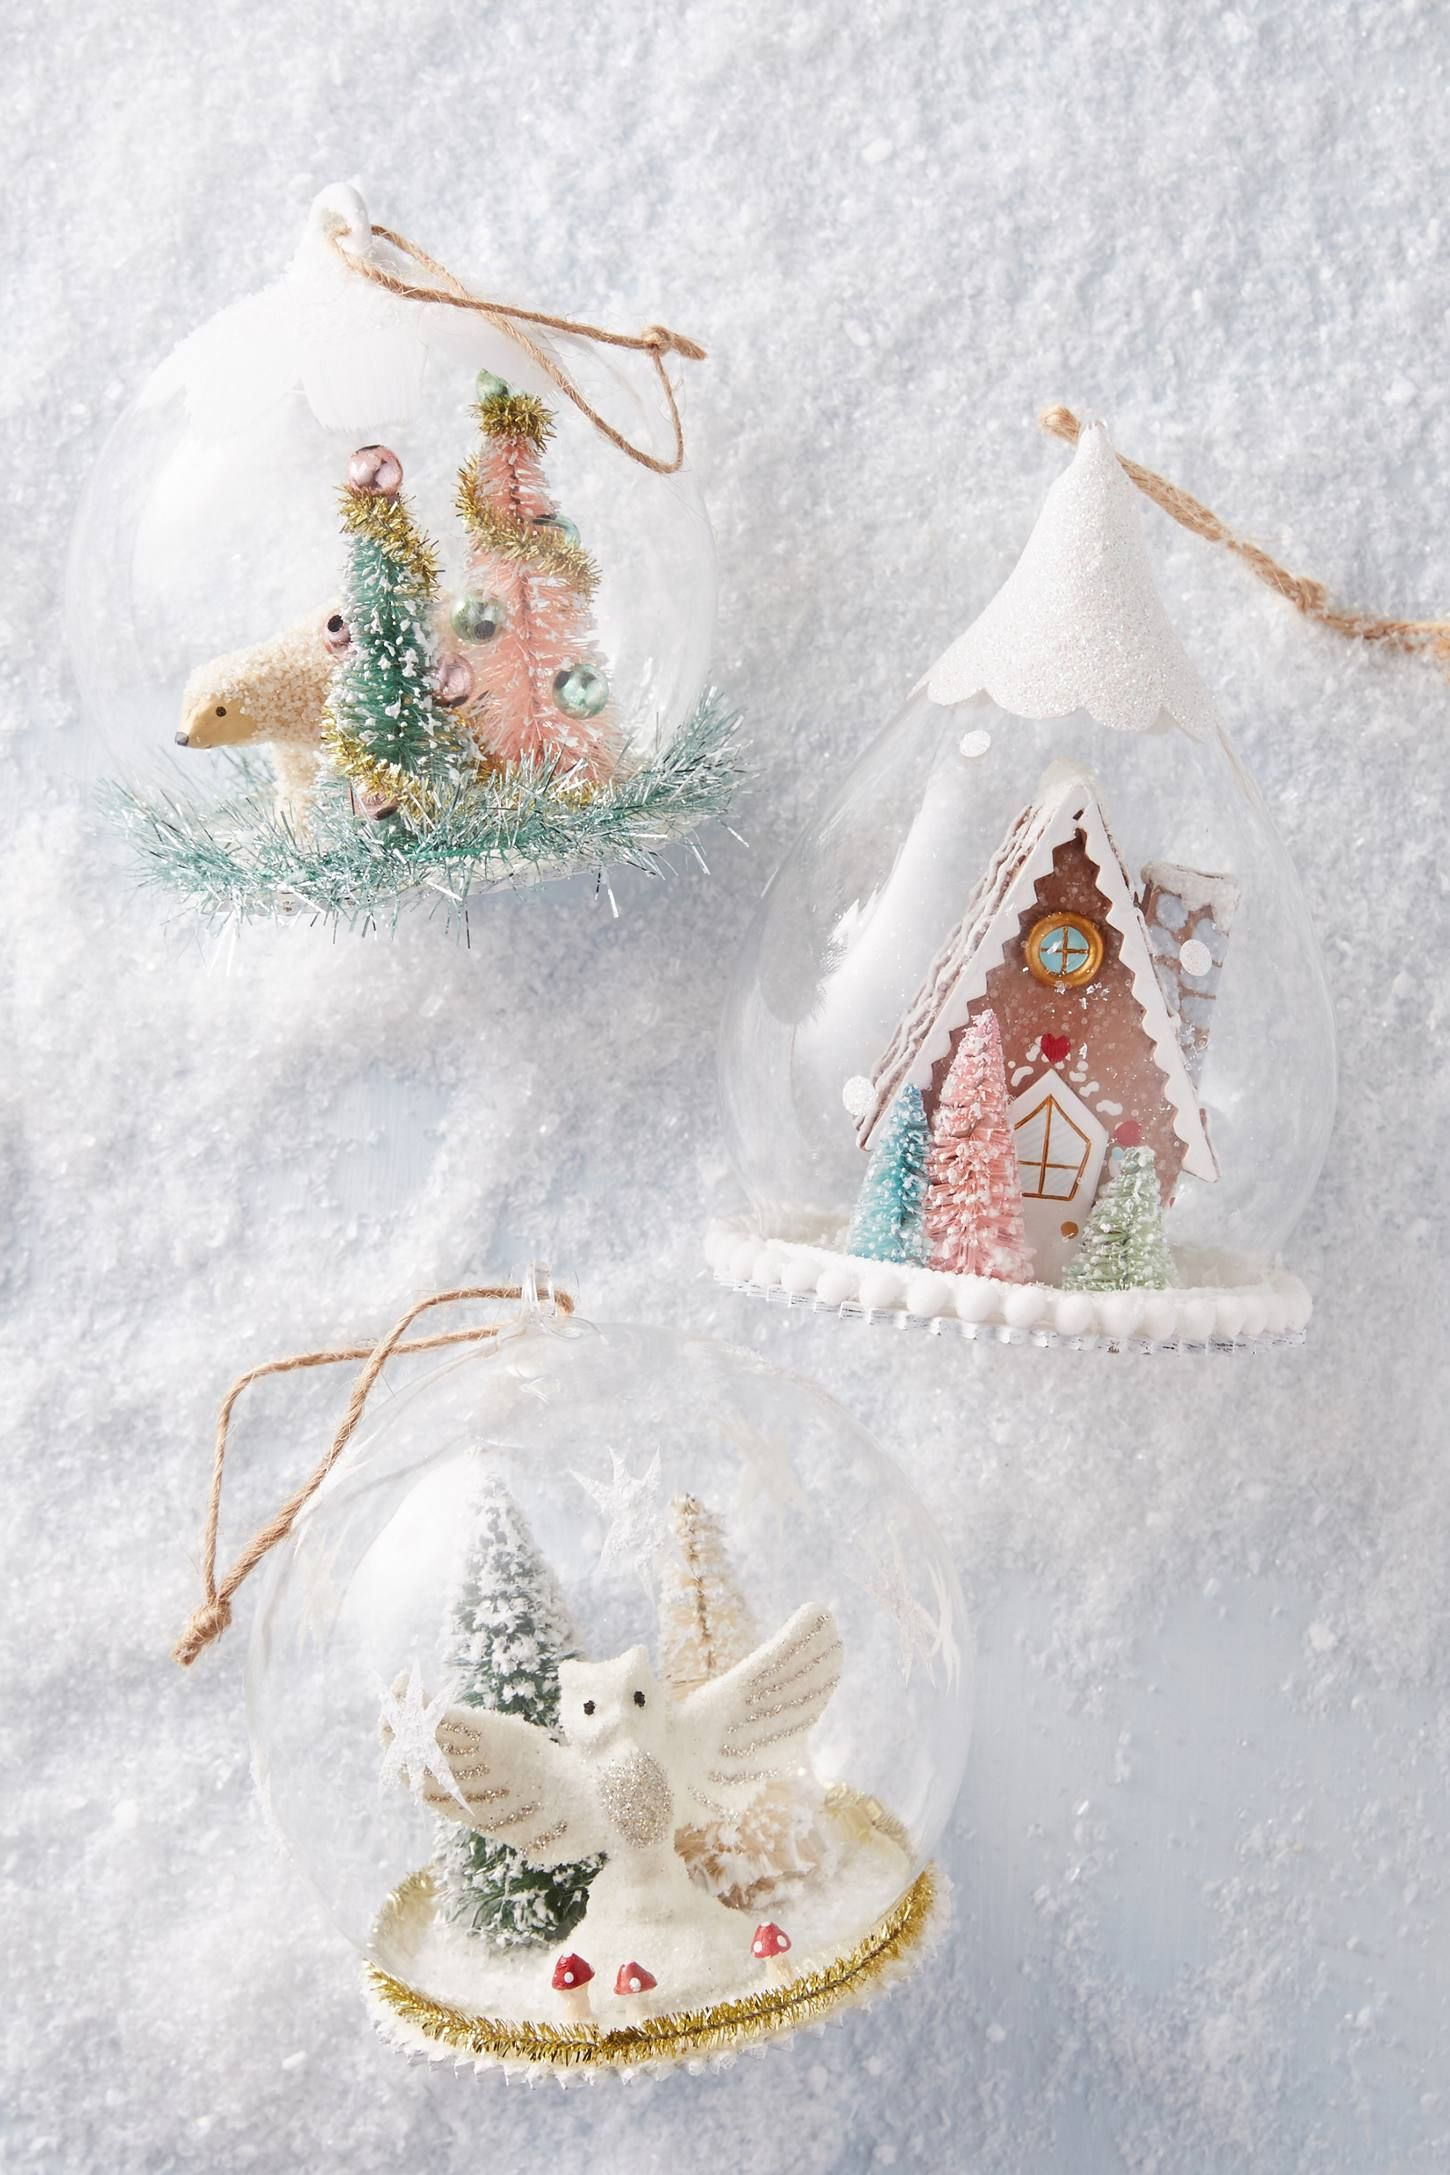 Shop The Gingerbread Snow Globe Ornament And More Anthropologie At Anthropologie Today Read Customer R Globe Ornament Christmas Crafts Diy Christmas Ornaments